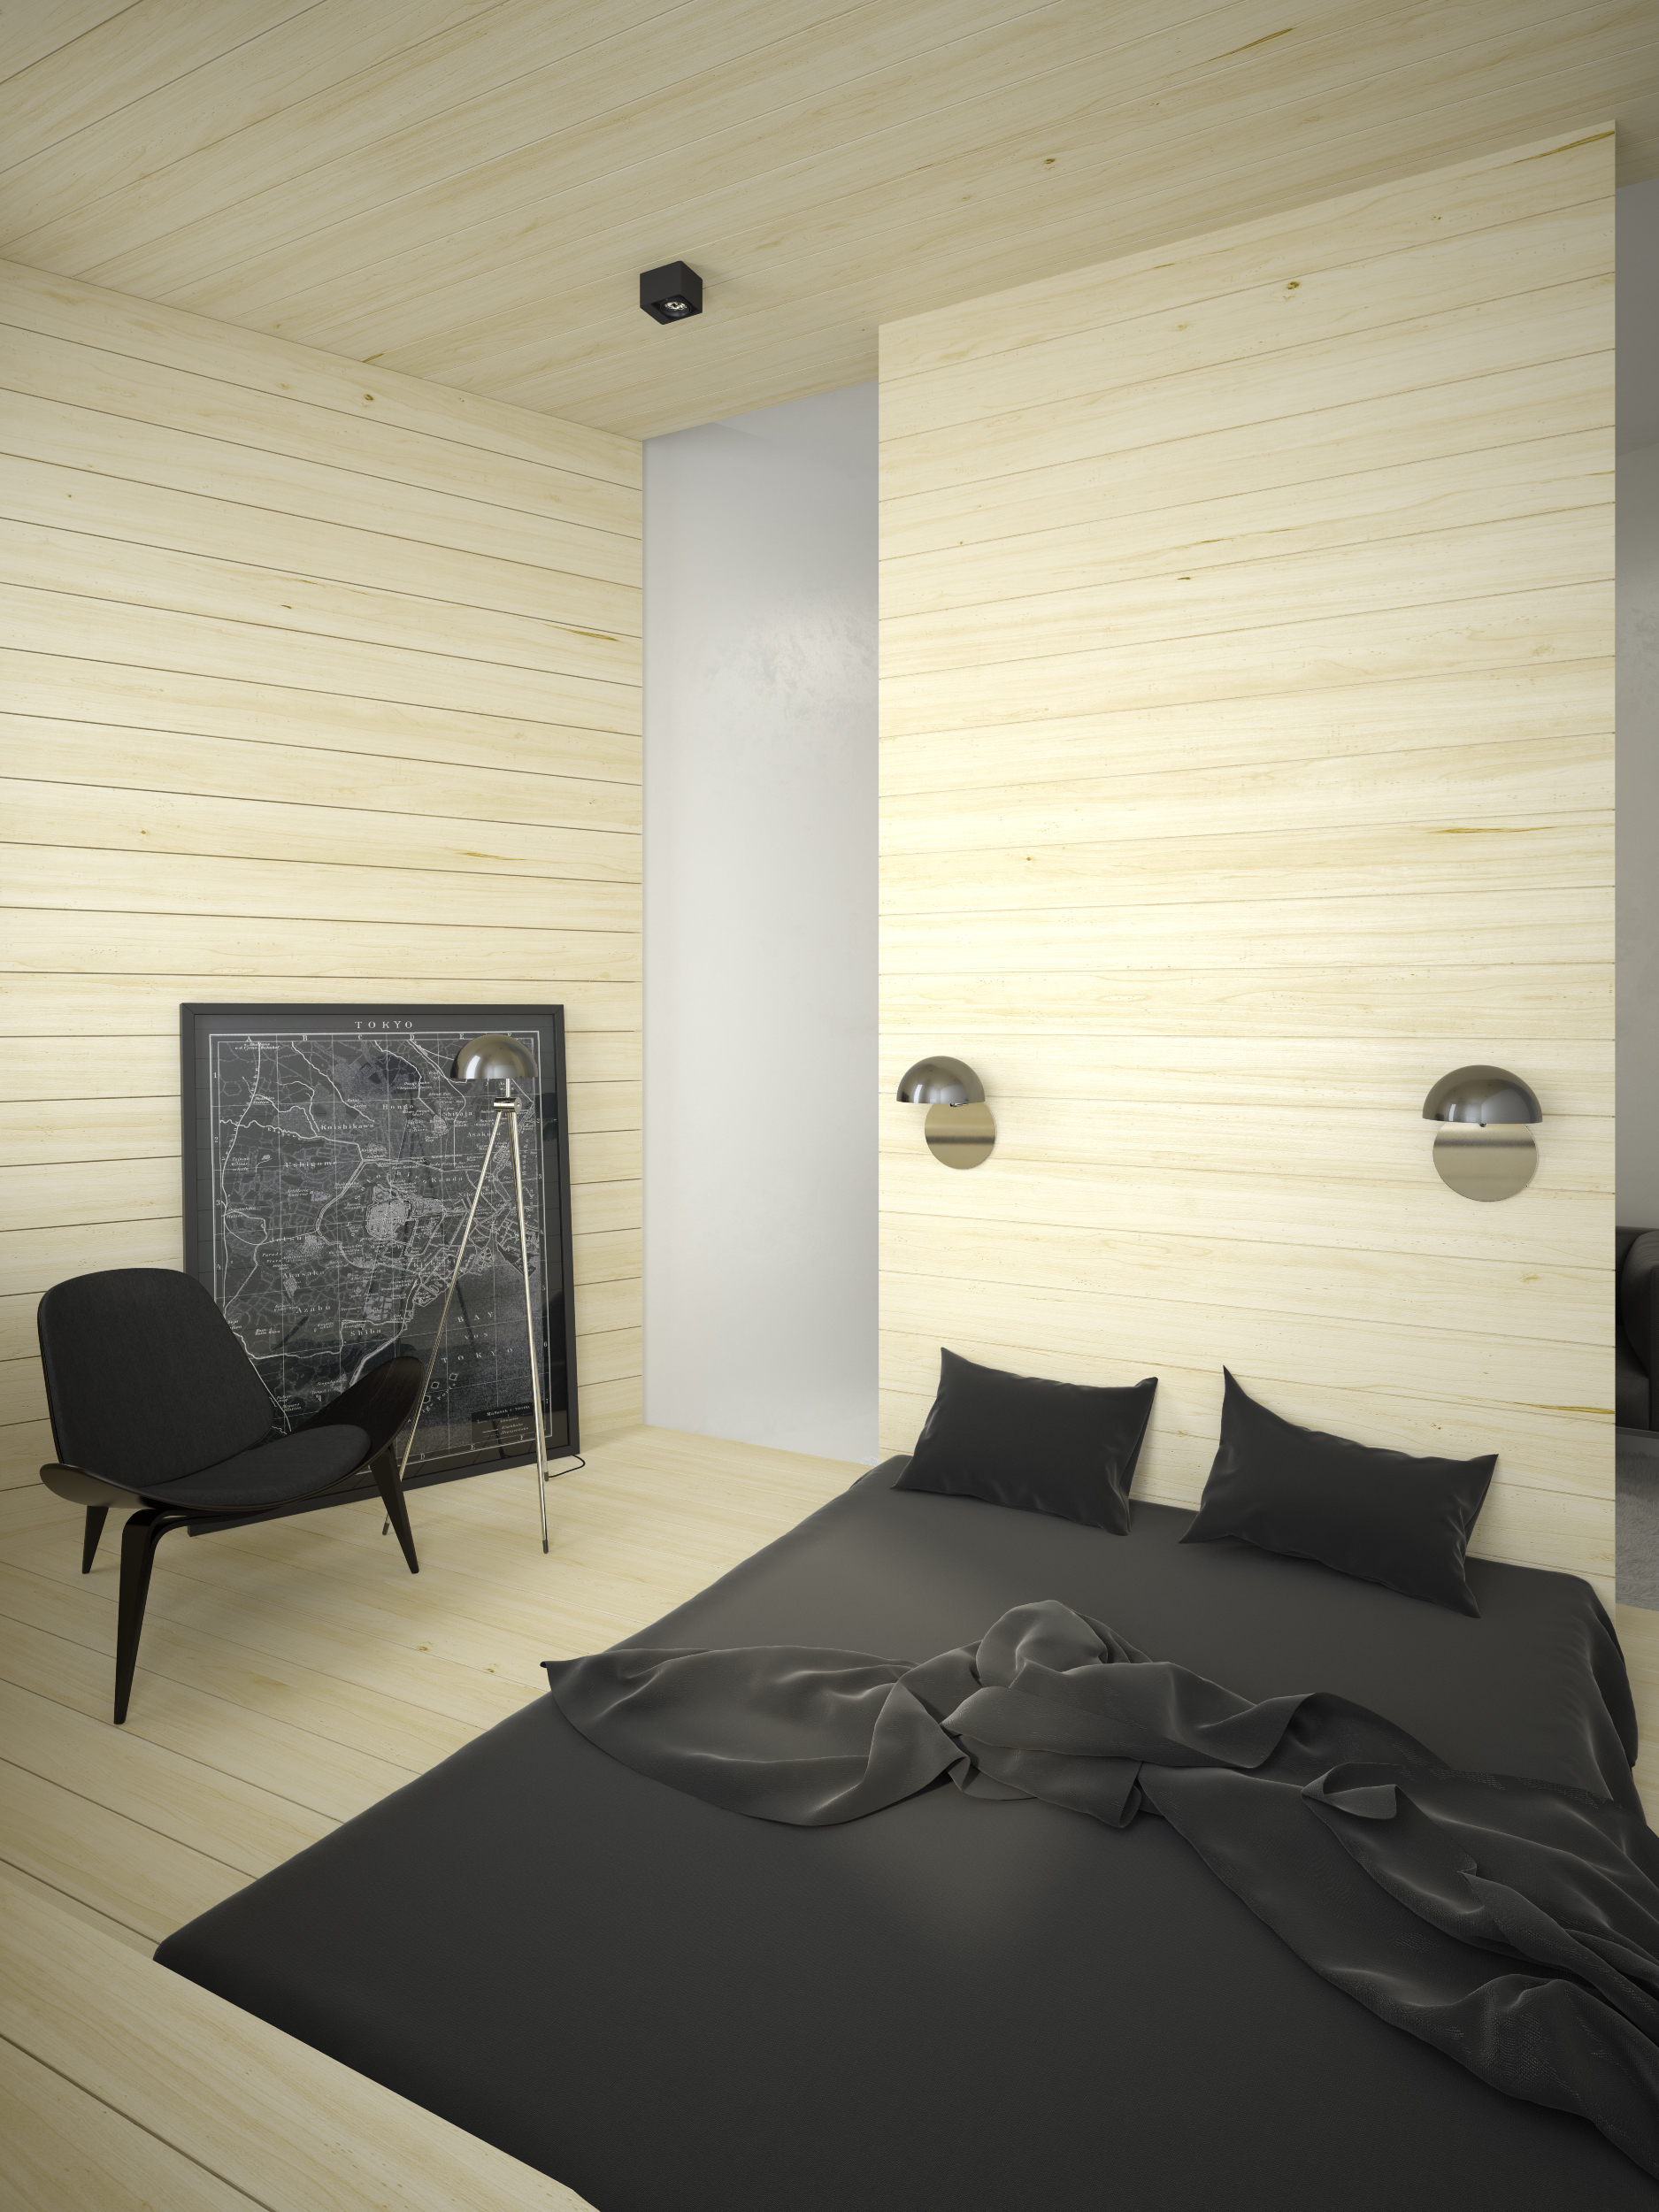 Minimalist hotel cotemporary hotel design hotel interior for Minimalist hotel design